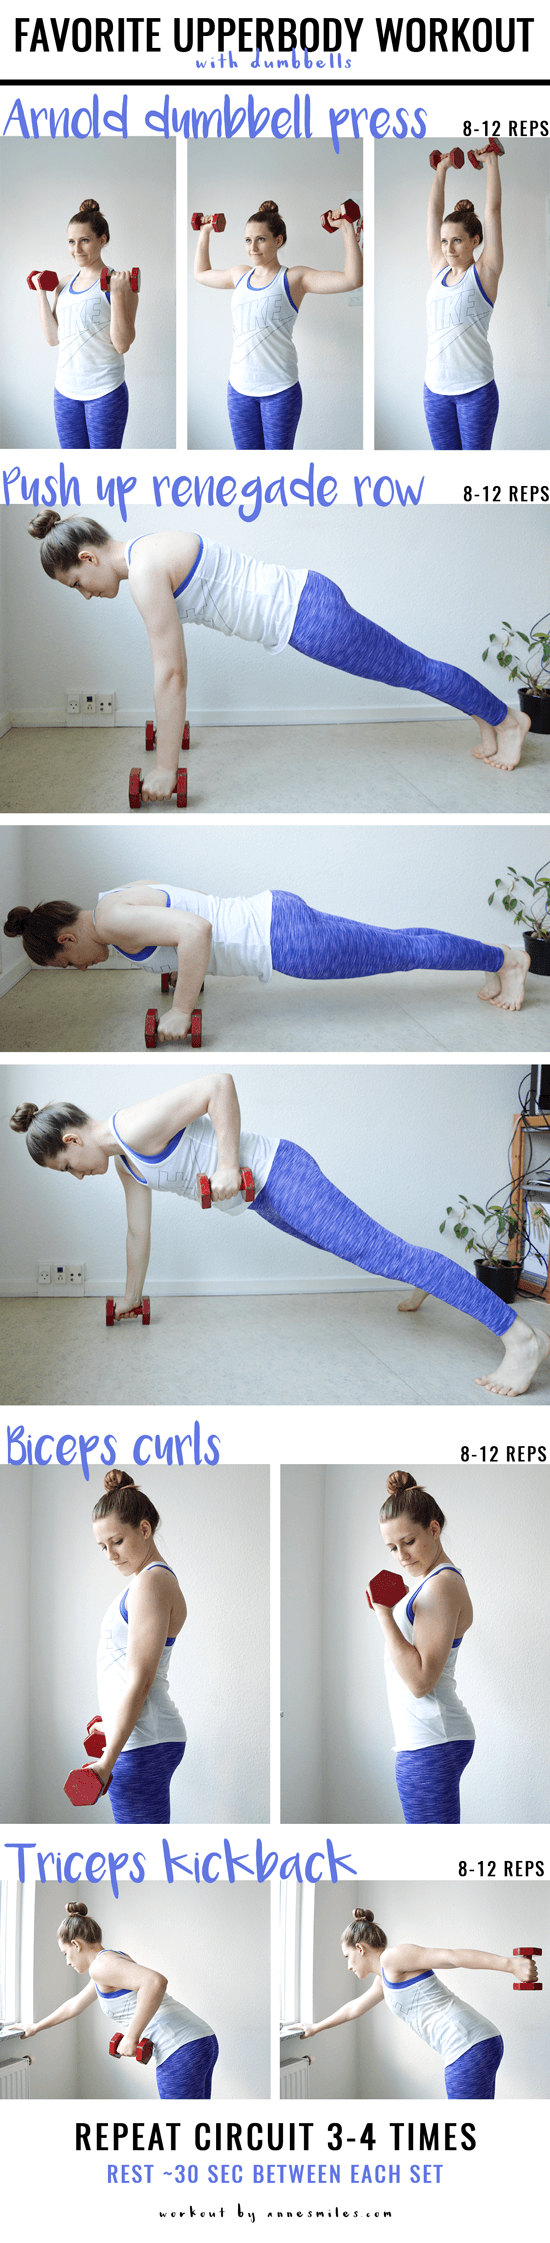 Favorite upper-body workout || This is a workout with some of my favorite dumbbell exercises, and it can easily be done at home. Click through to read more, or repin to save for later!